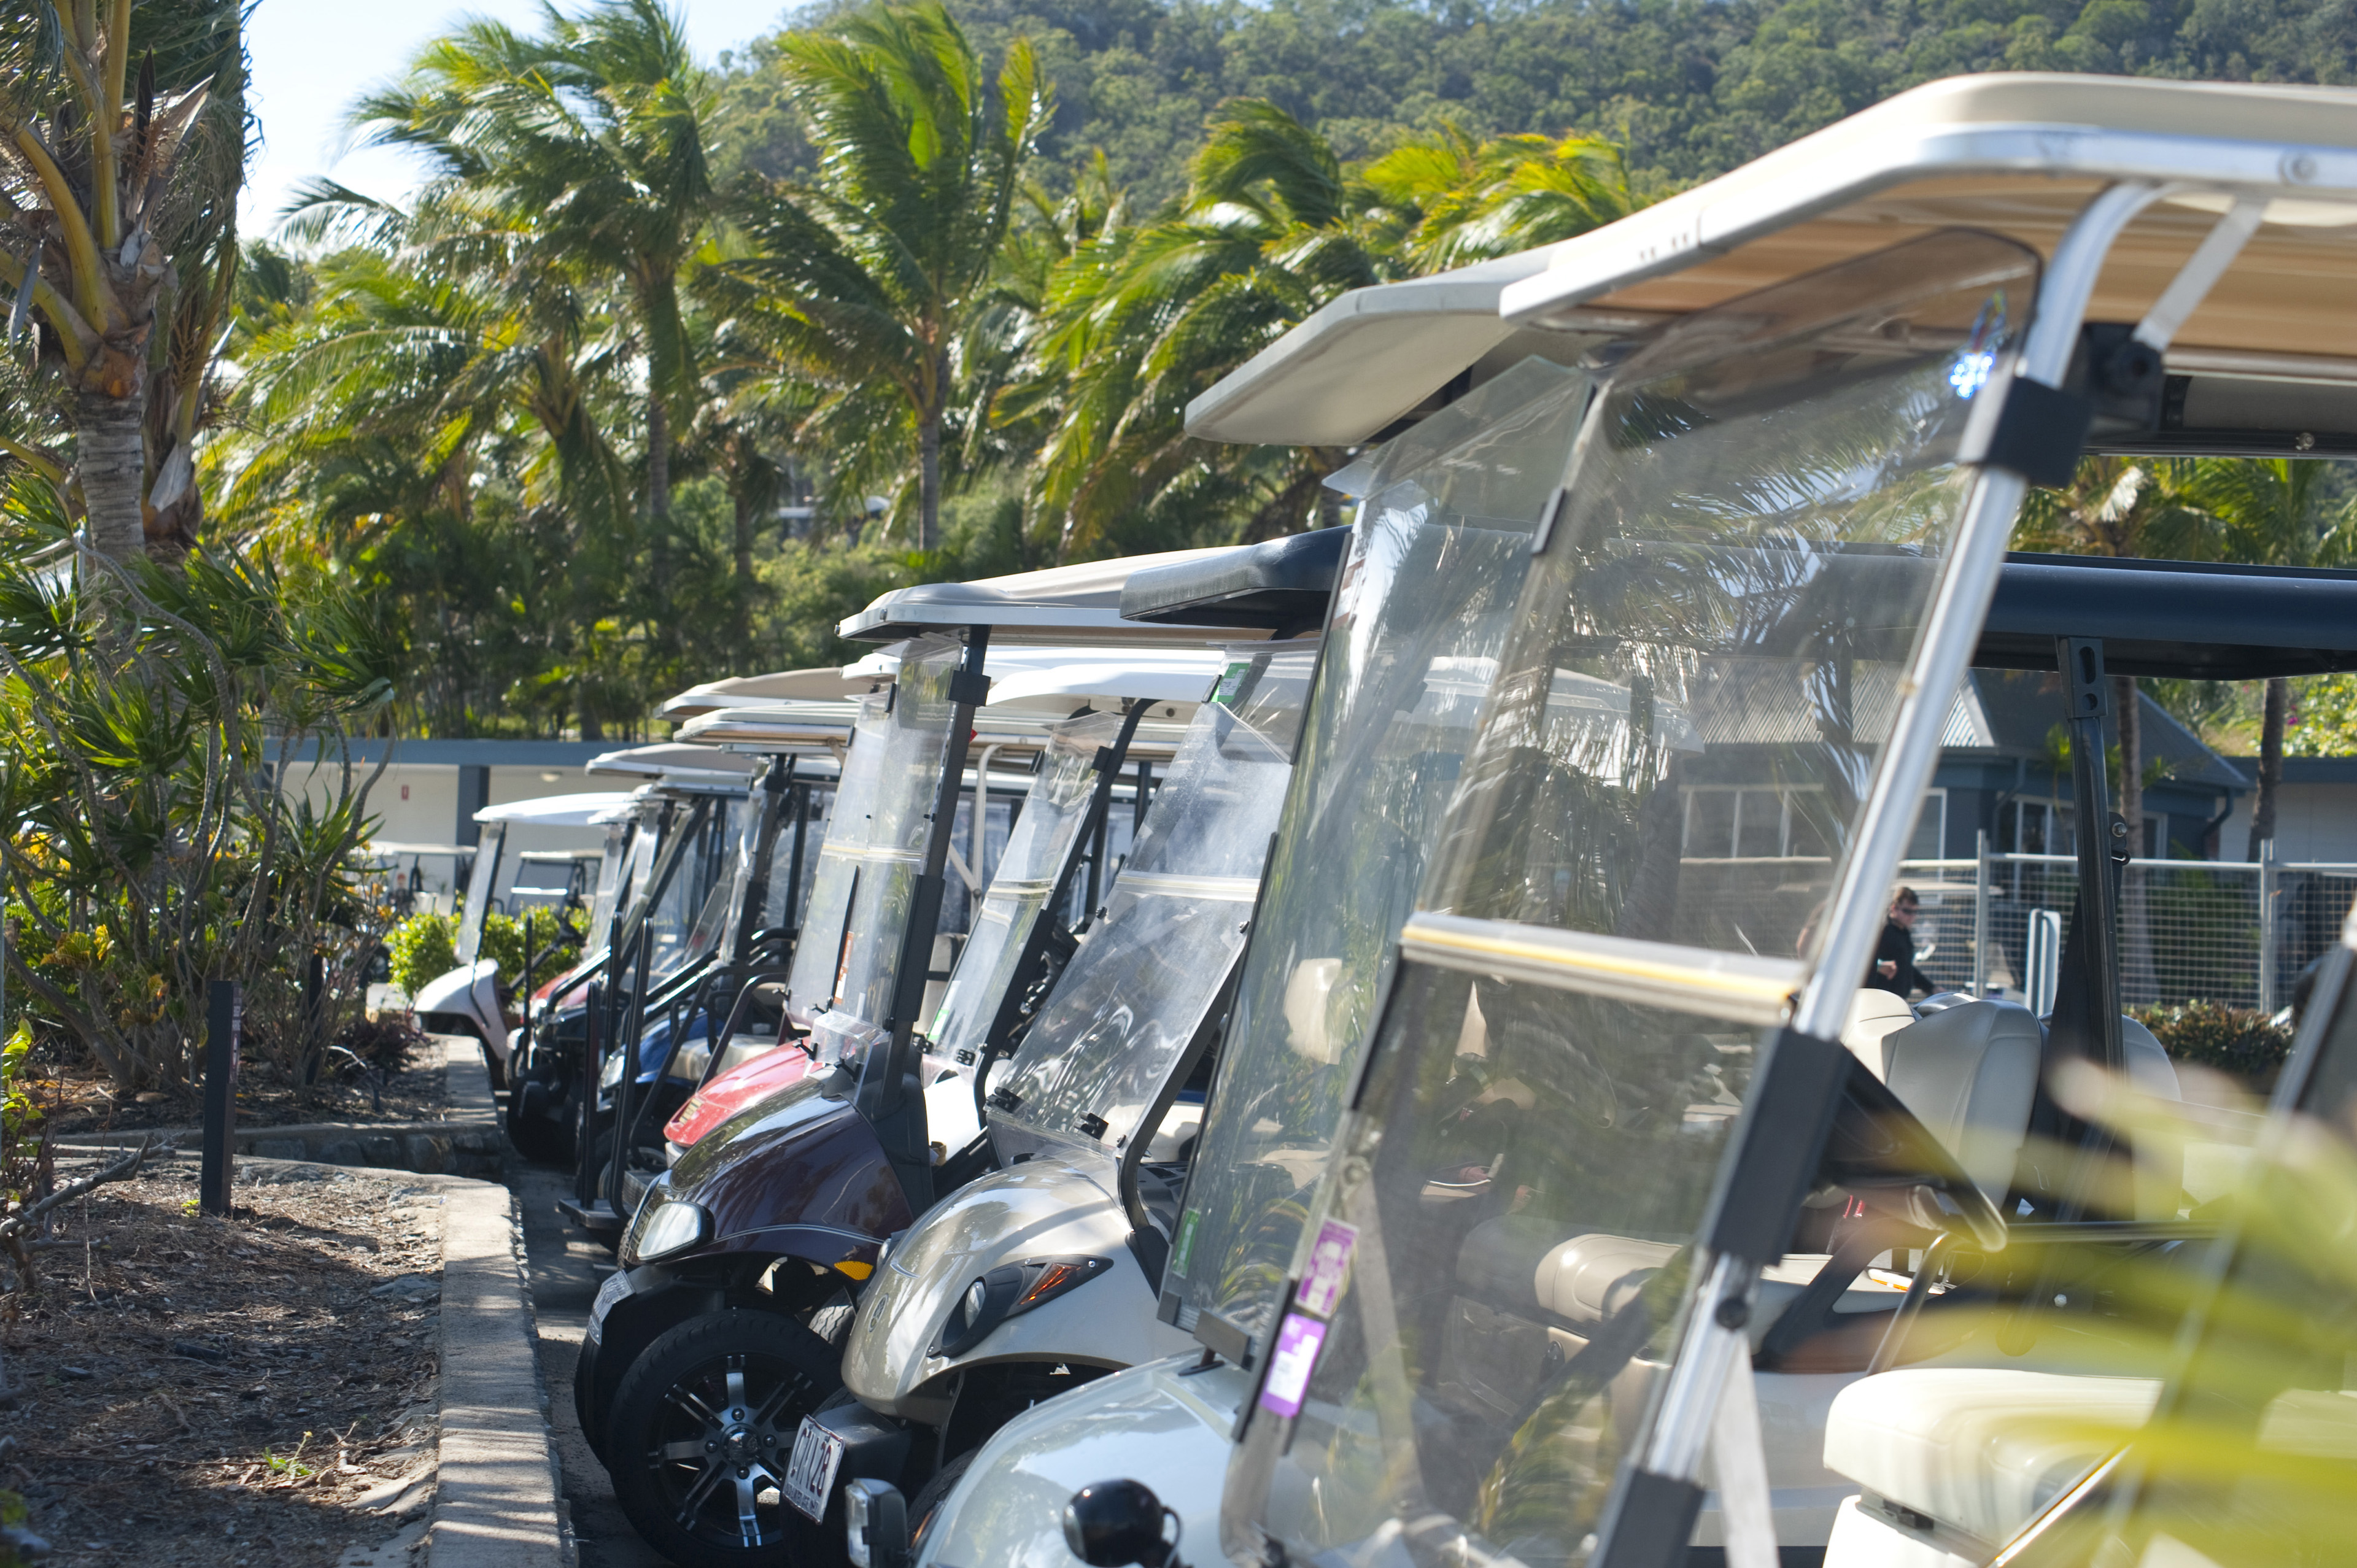 Line of golf carts parked outside a club house on a golf course with leafy green trees